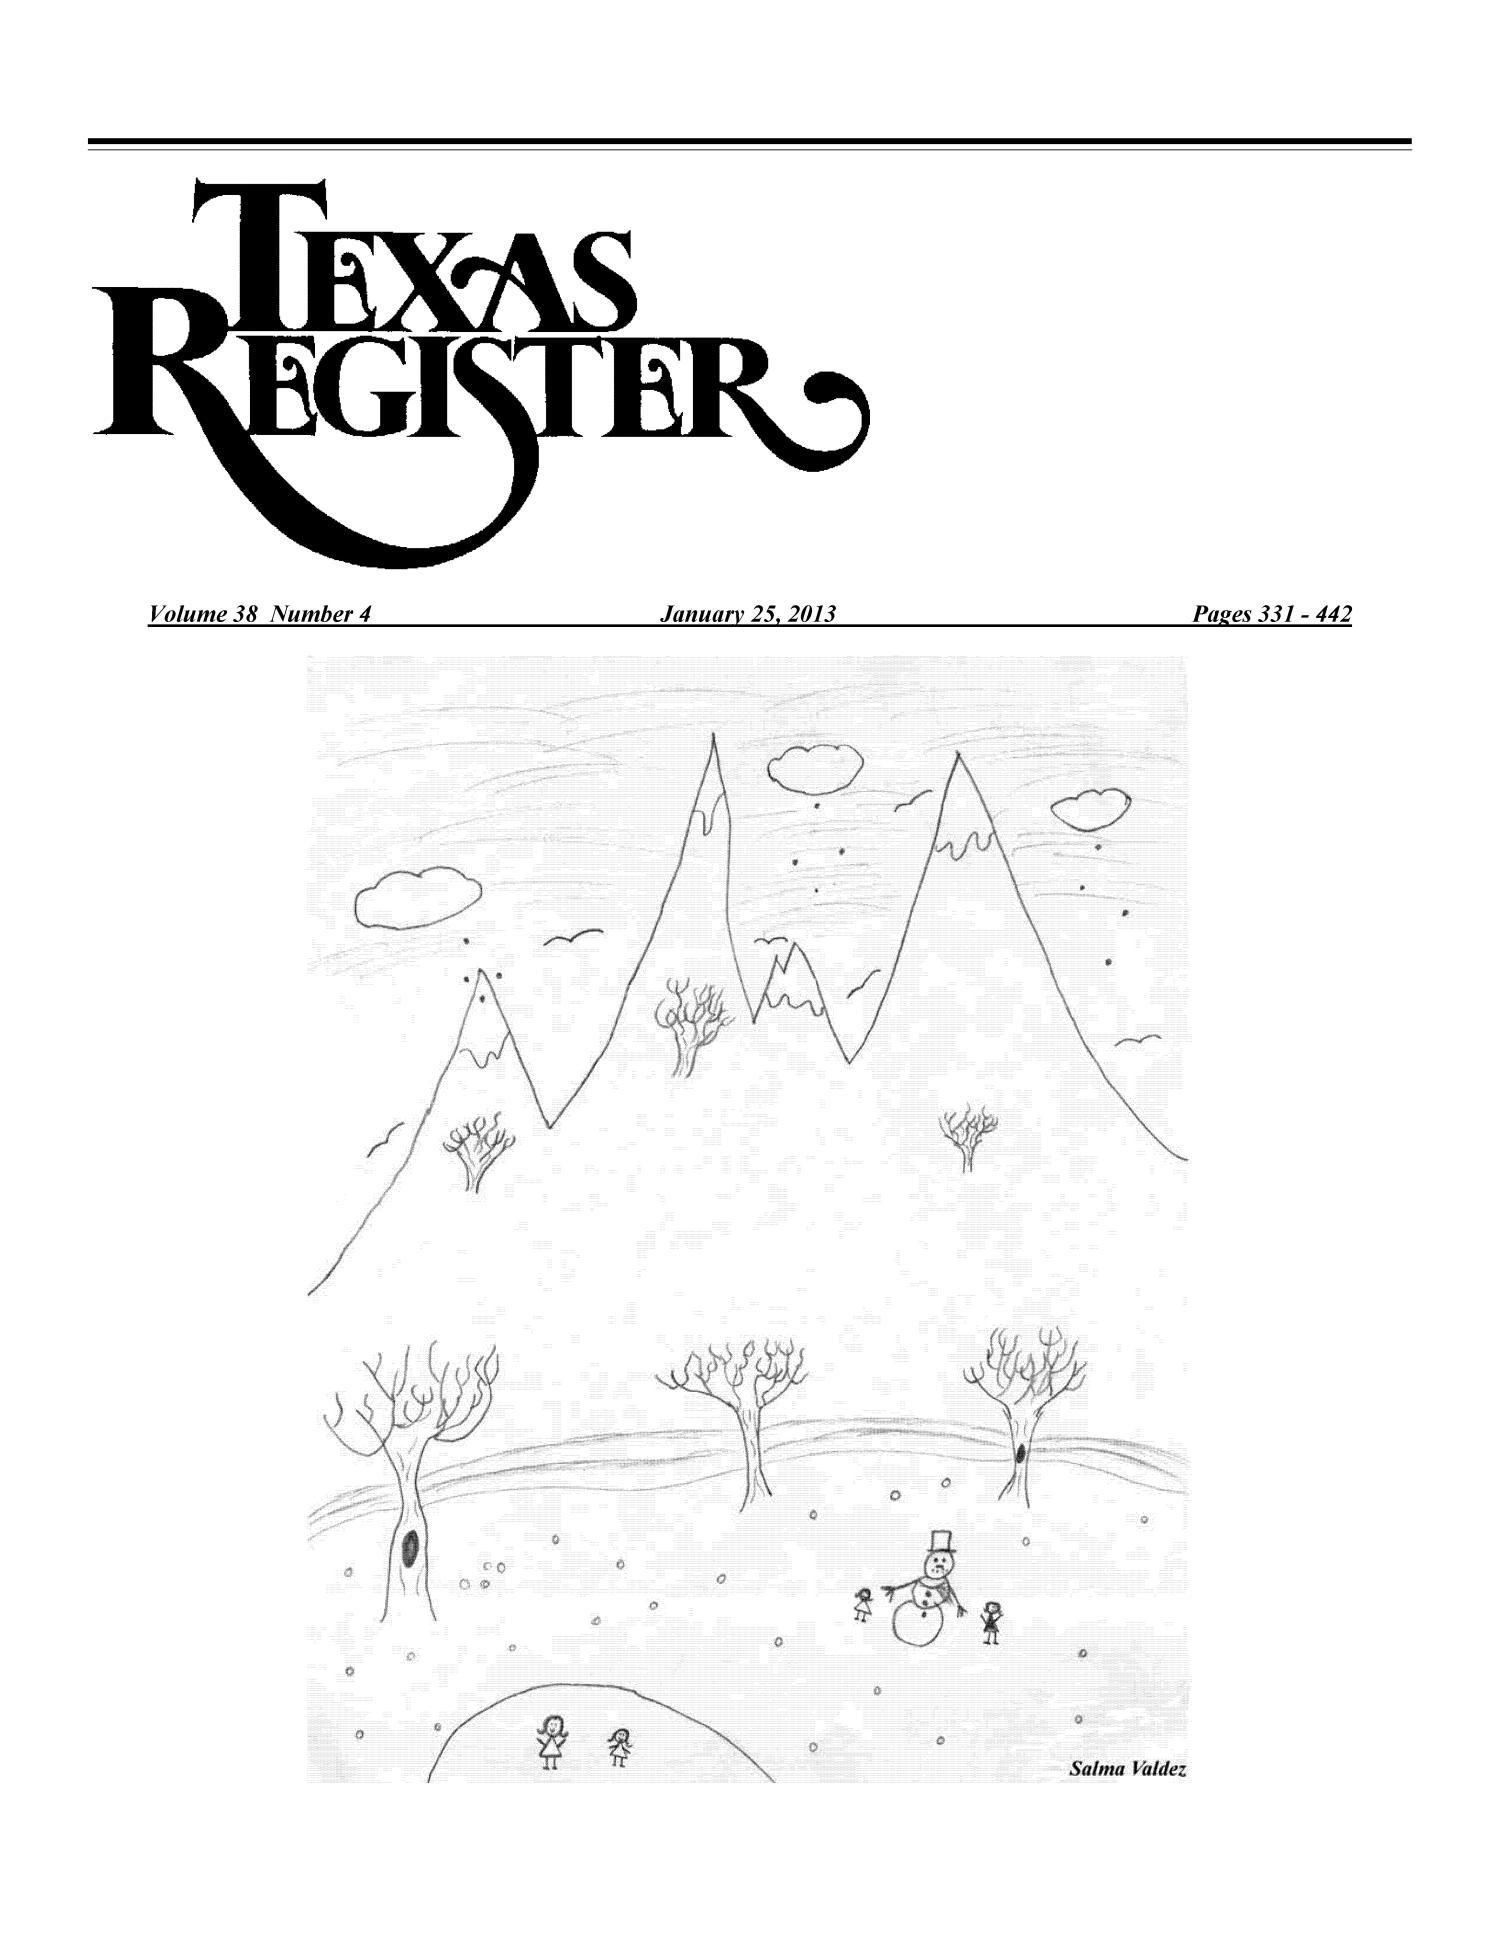 Texas Register, Volume 38, Number 4, Pages 331-442, January 25, 2013                                                                                                      Title Page